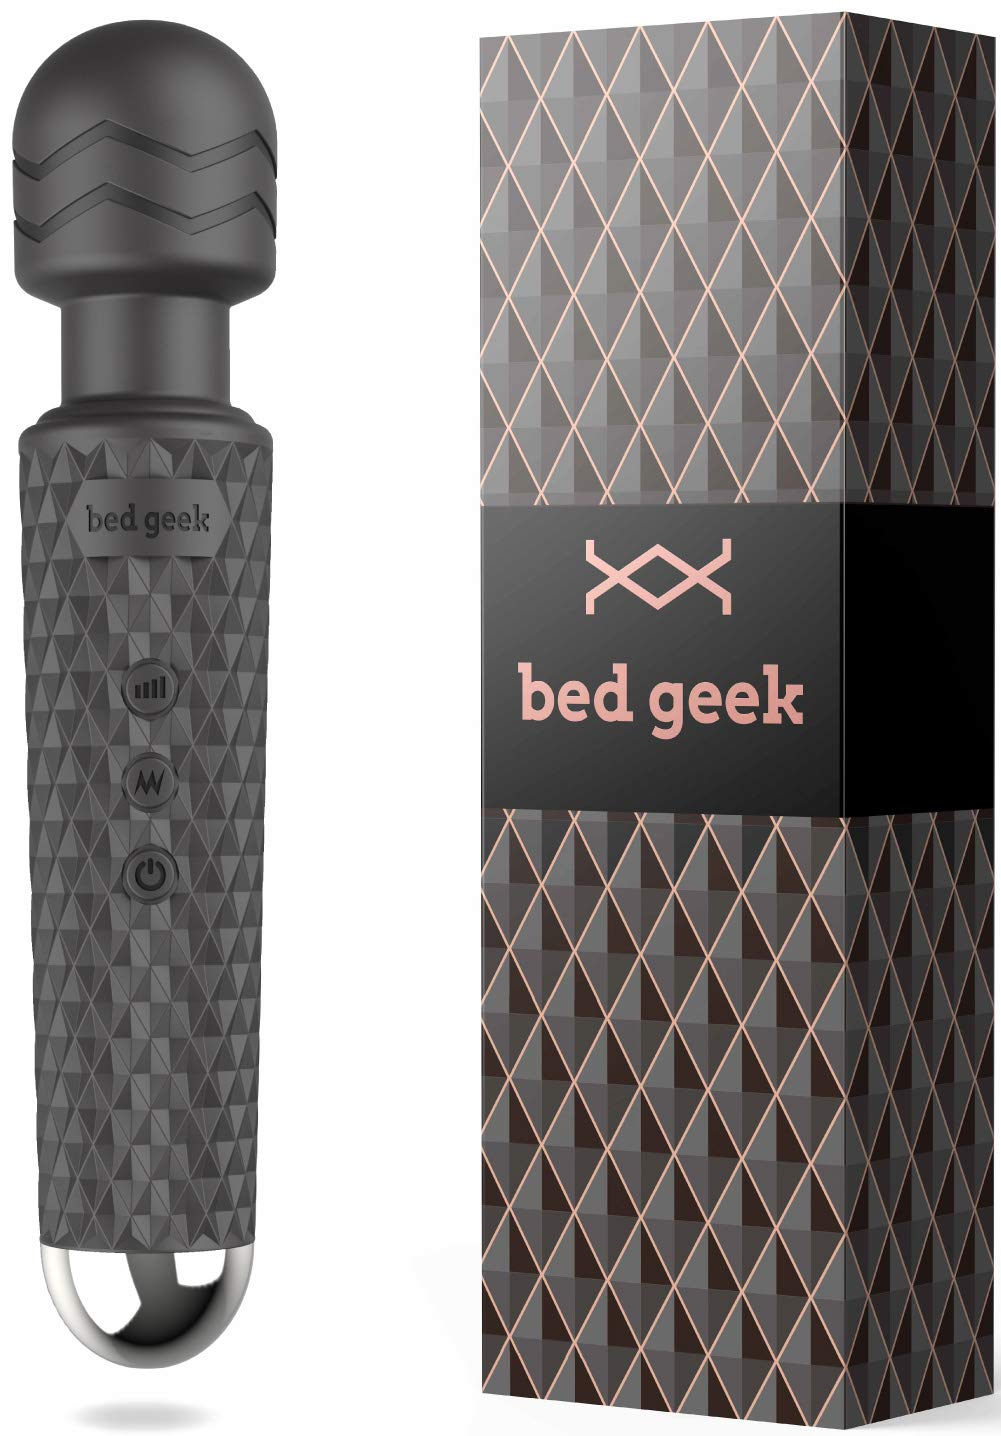 Wireless Full Body Personal Wand Massager bed geek Handheld Waterproof Massager 20 Vibration Patterns 8 Speeds for Stress Relief in Black by bed geek